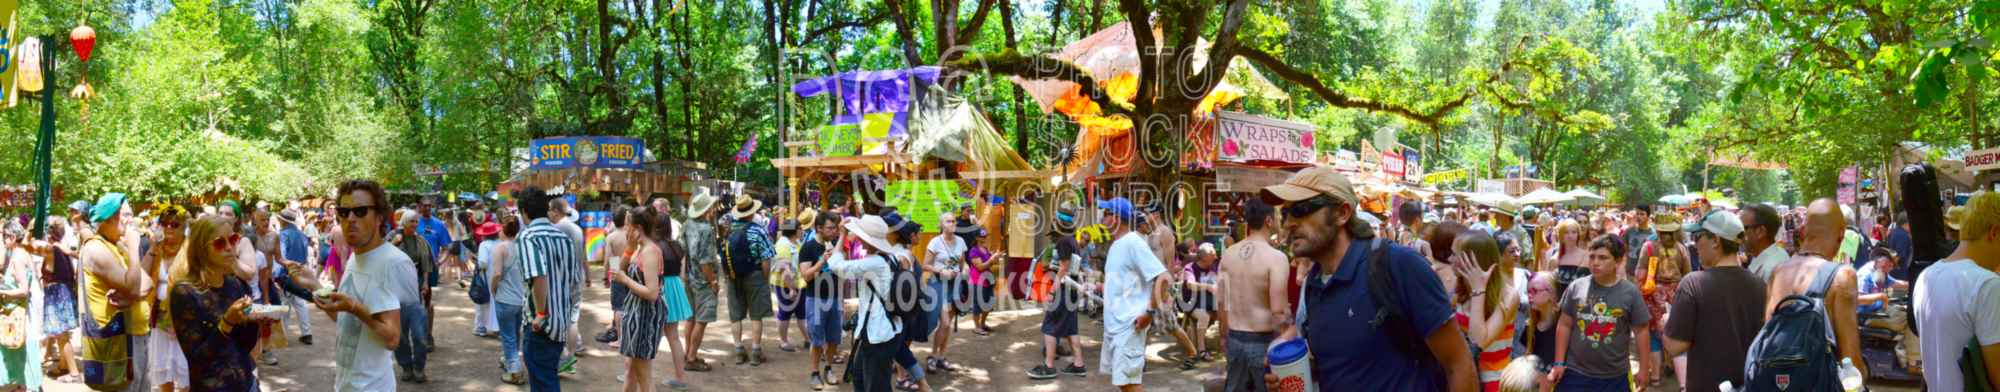 Crowd at Oregon Country Fair